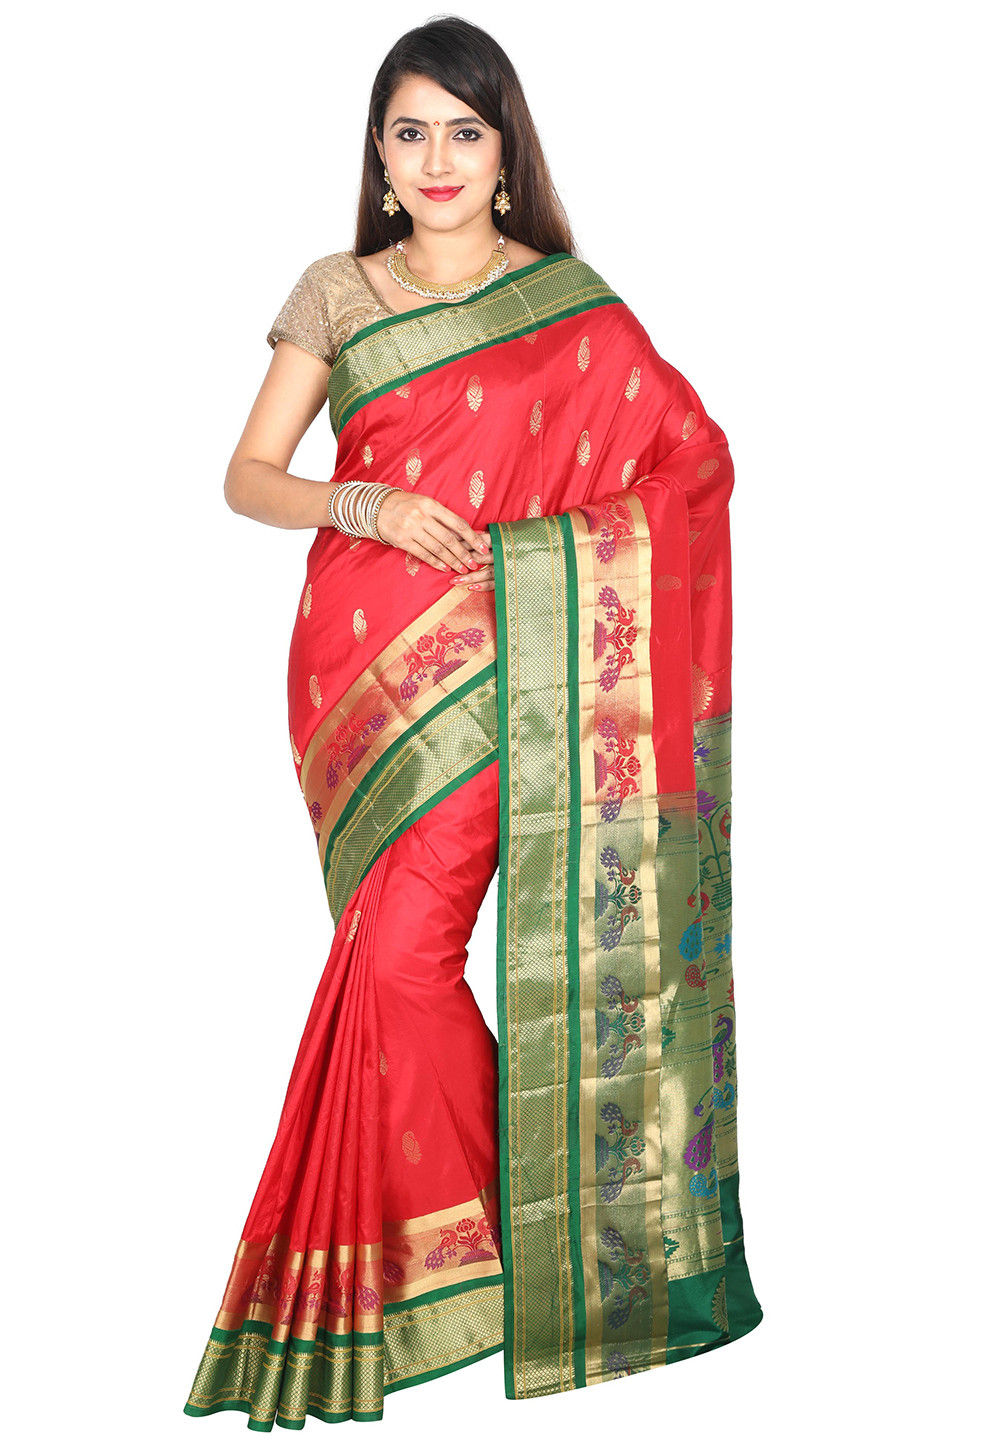 6280778a10 ... Pure Paithani Silk Saree in Red. Zoom